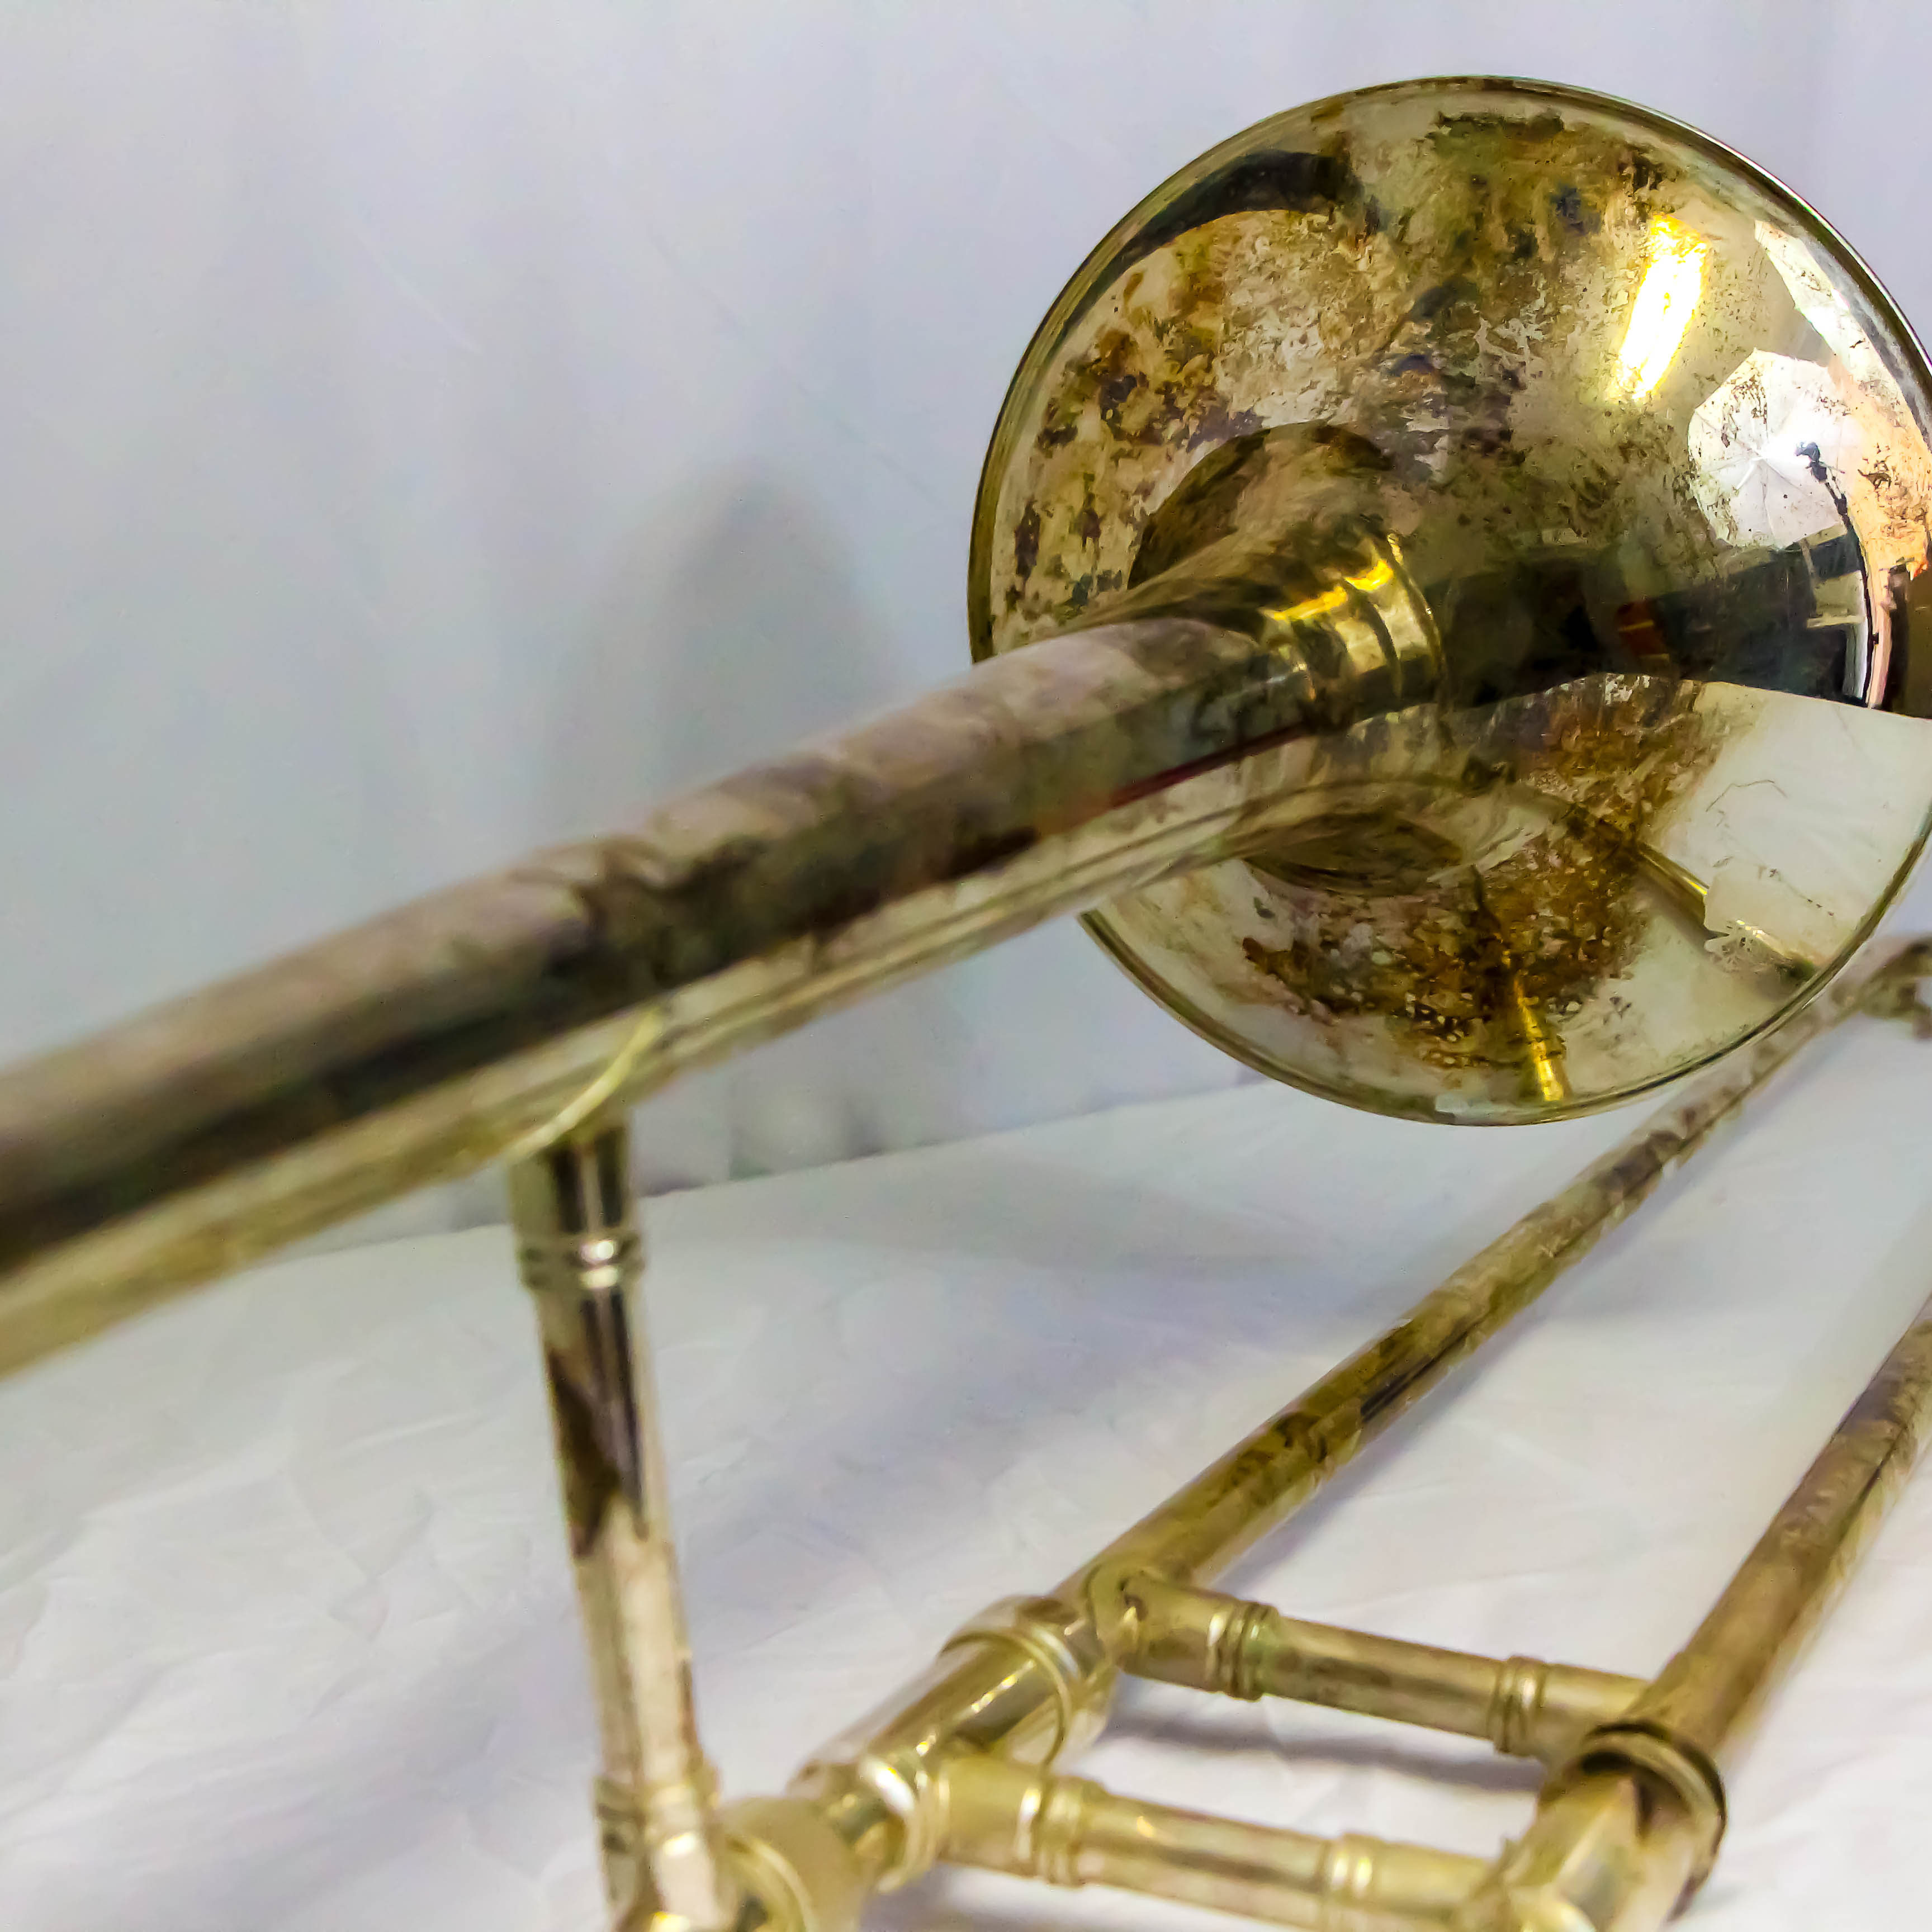 Before (Dirty Trumpet)